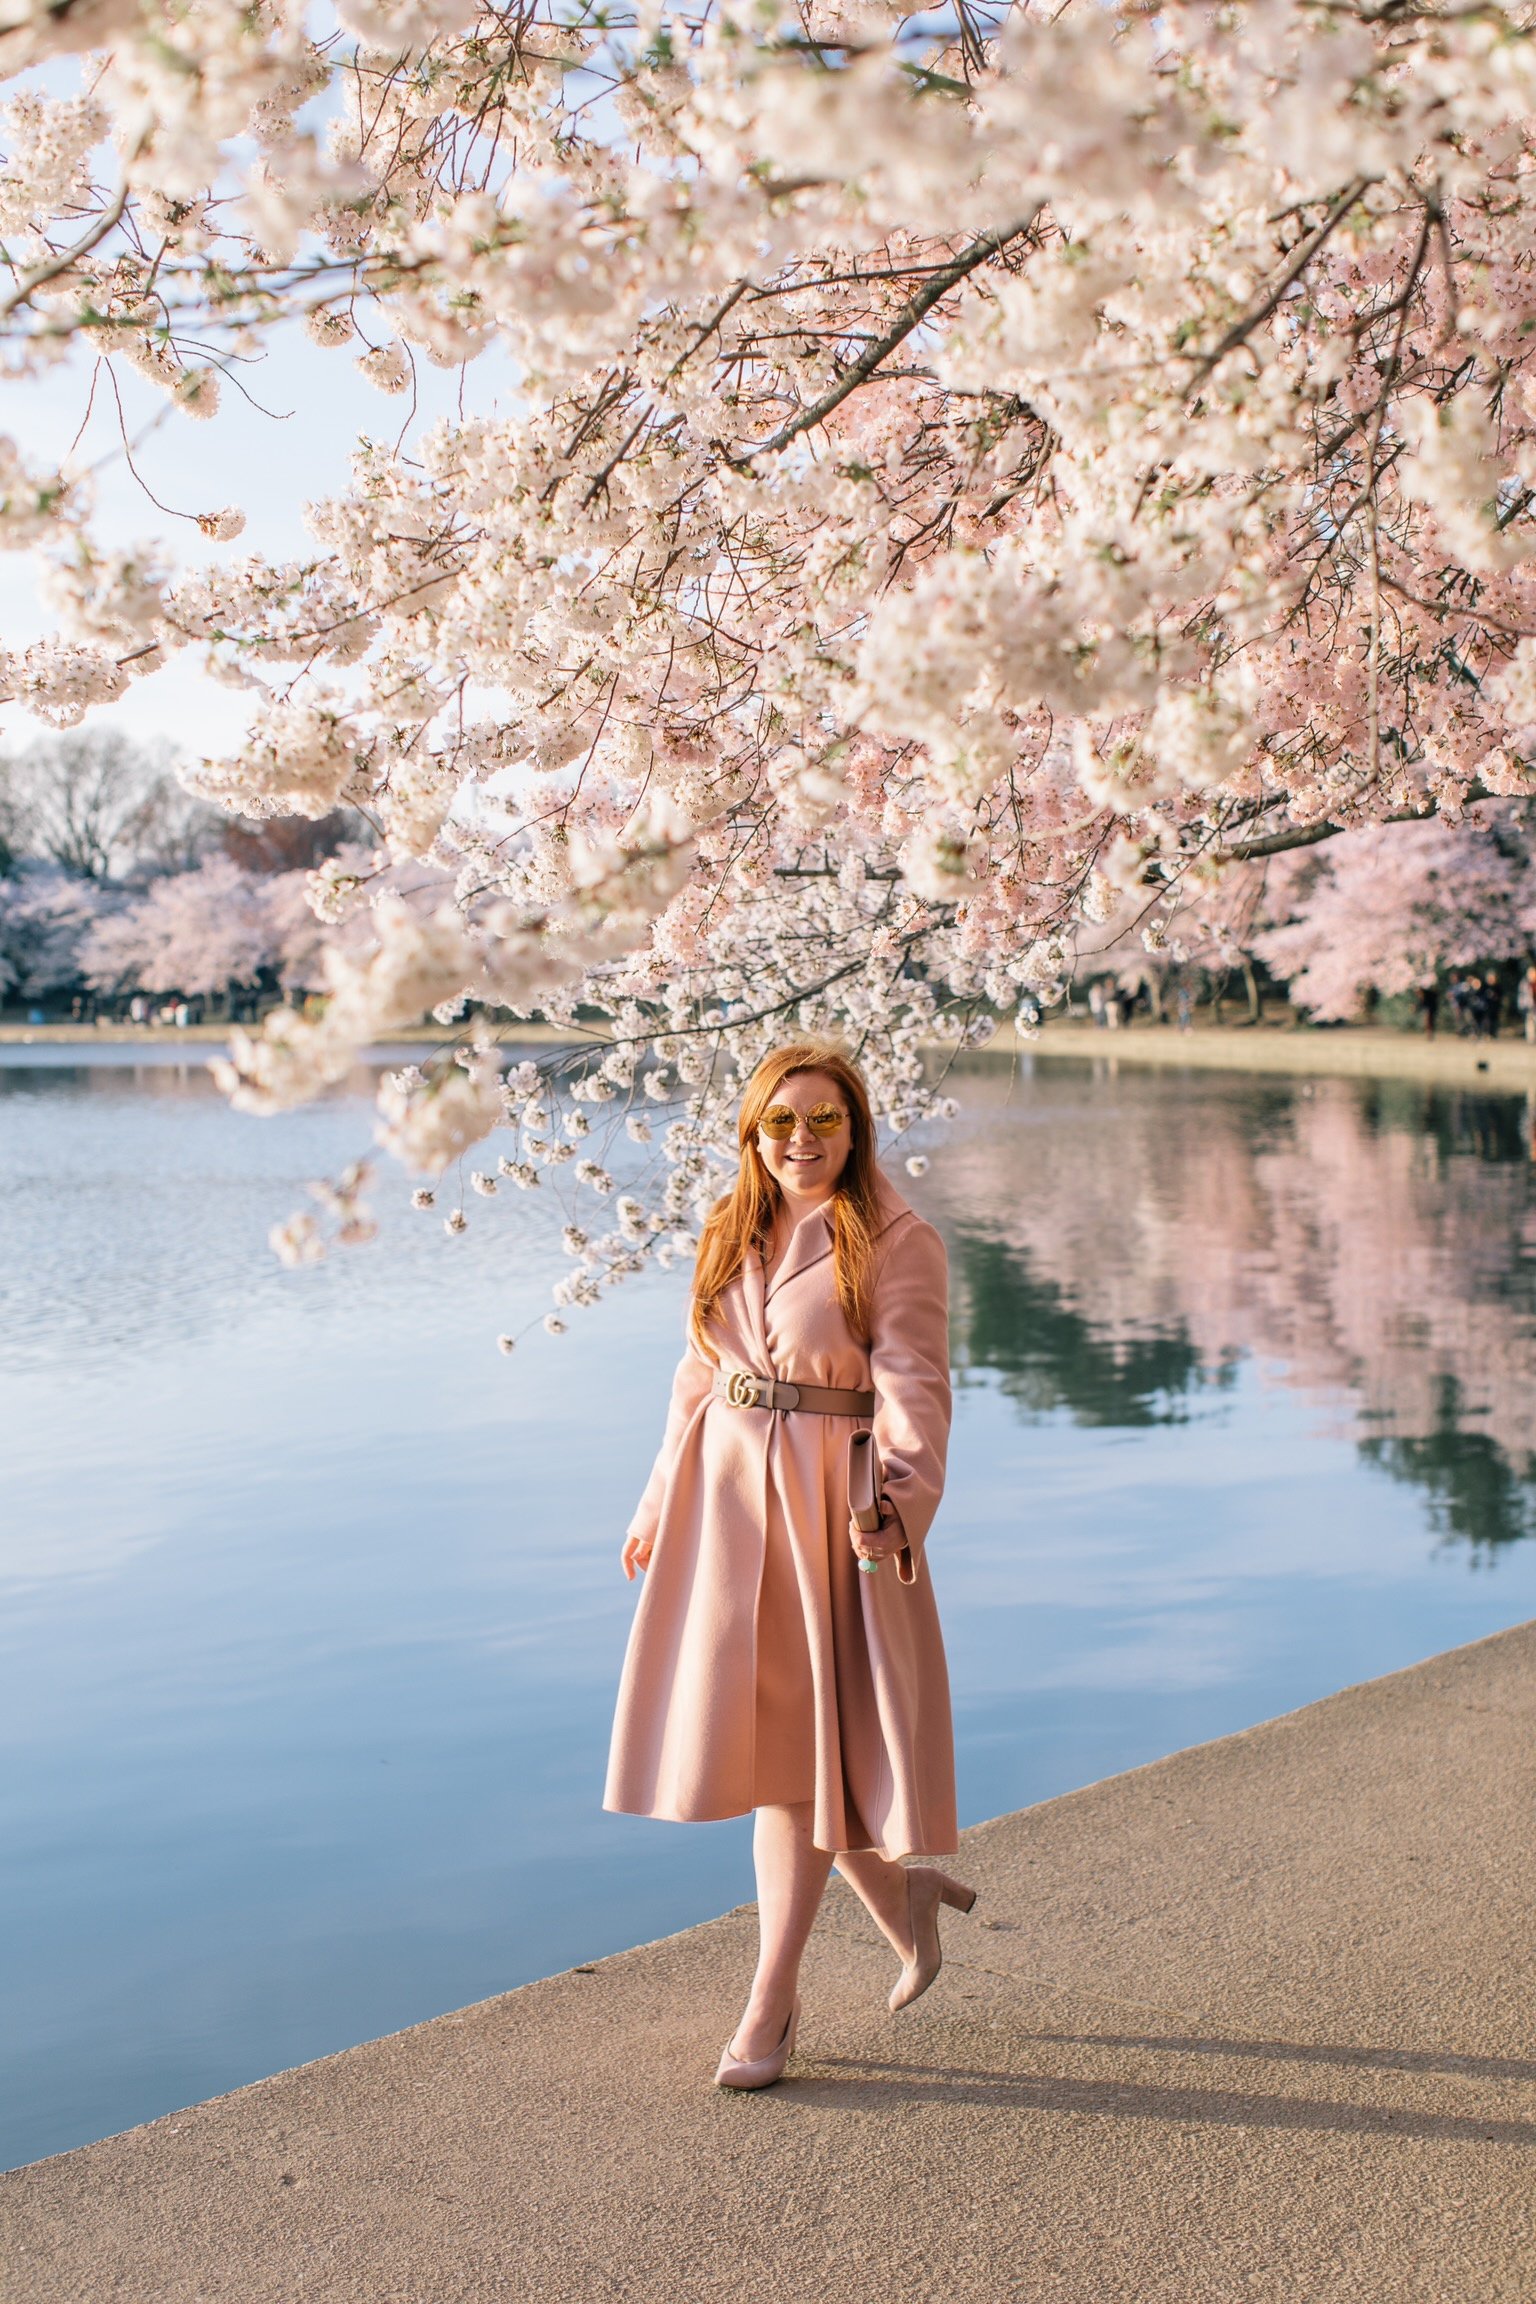 dc_cherry_blossoms-2.JPG